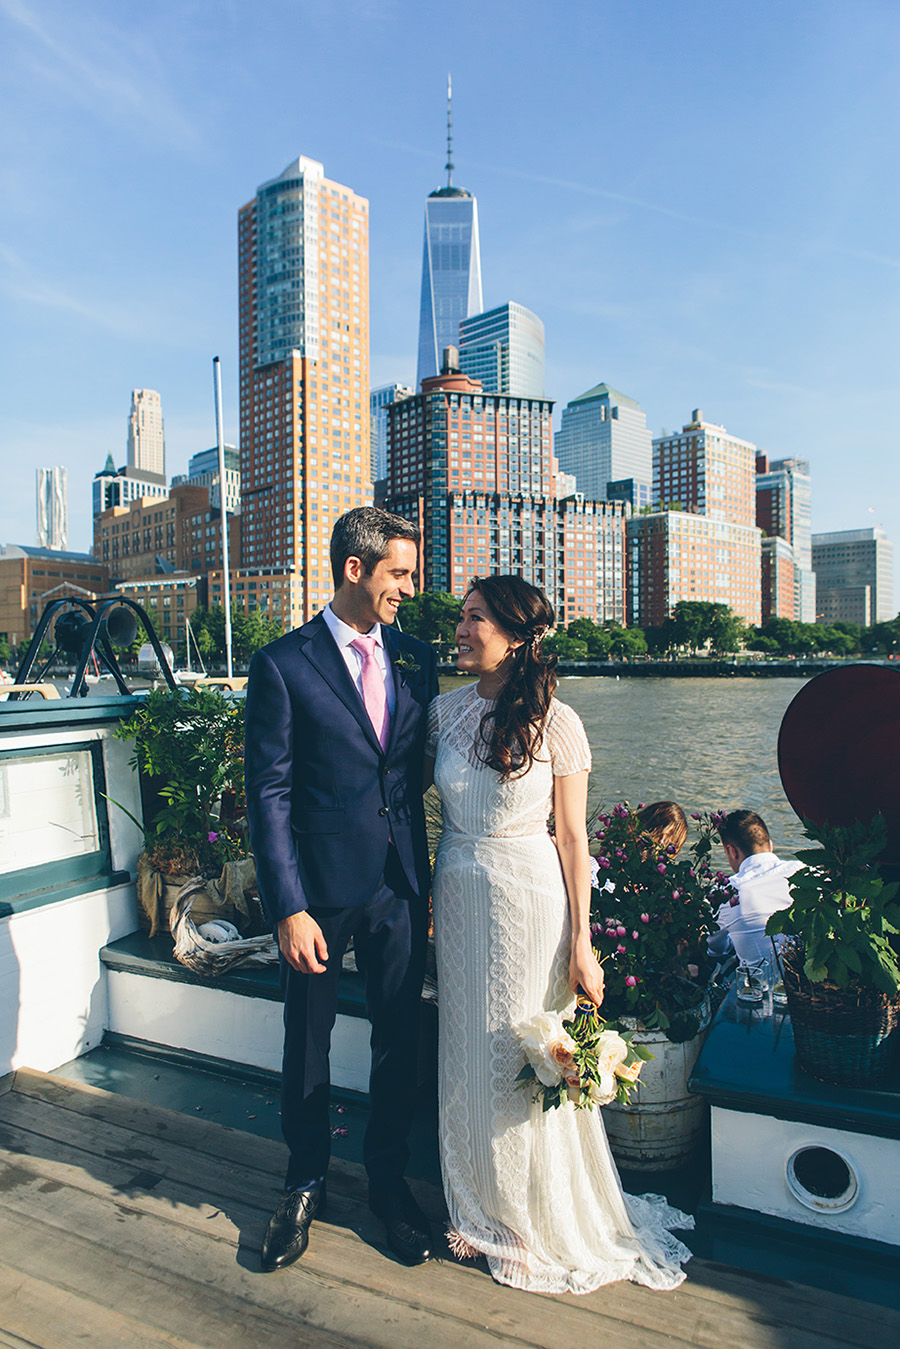 NEW-YORK-CITY-WEDDING-PHOTOGRAPHER-WEST-VILLAGE-GREENWICH-HOTEL-GRAND-BANKS-PIER-0060.jpg